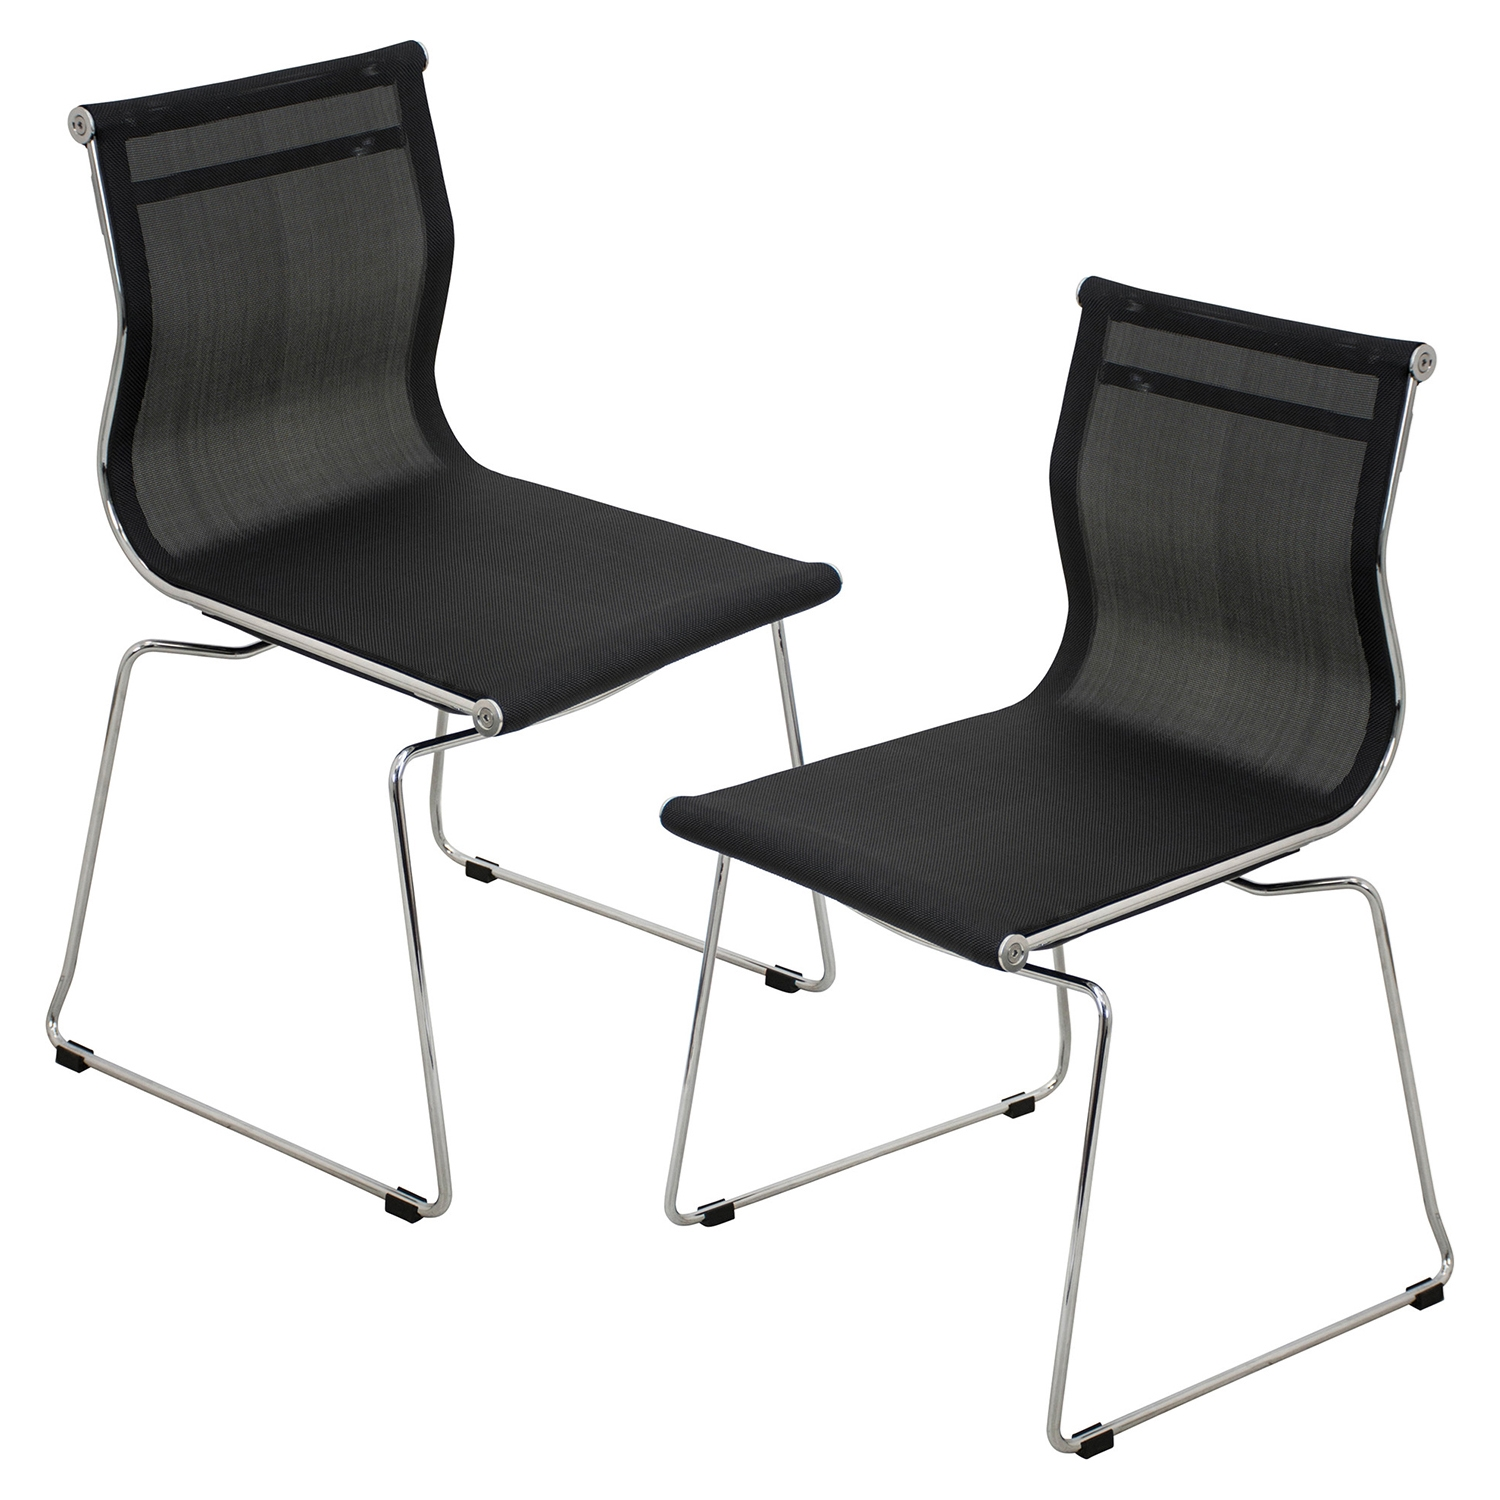 Mirage Stackable Dining Chair - Black (Set of 2)